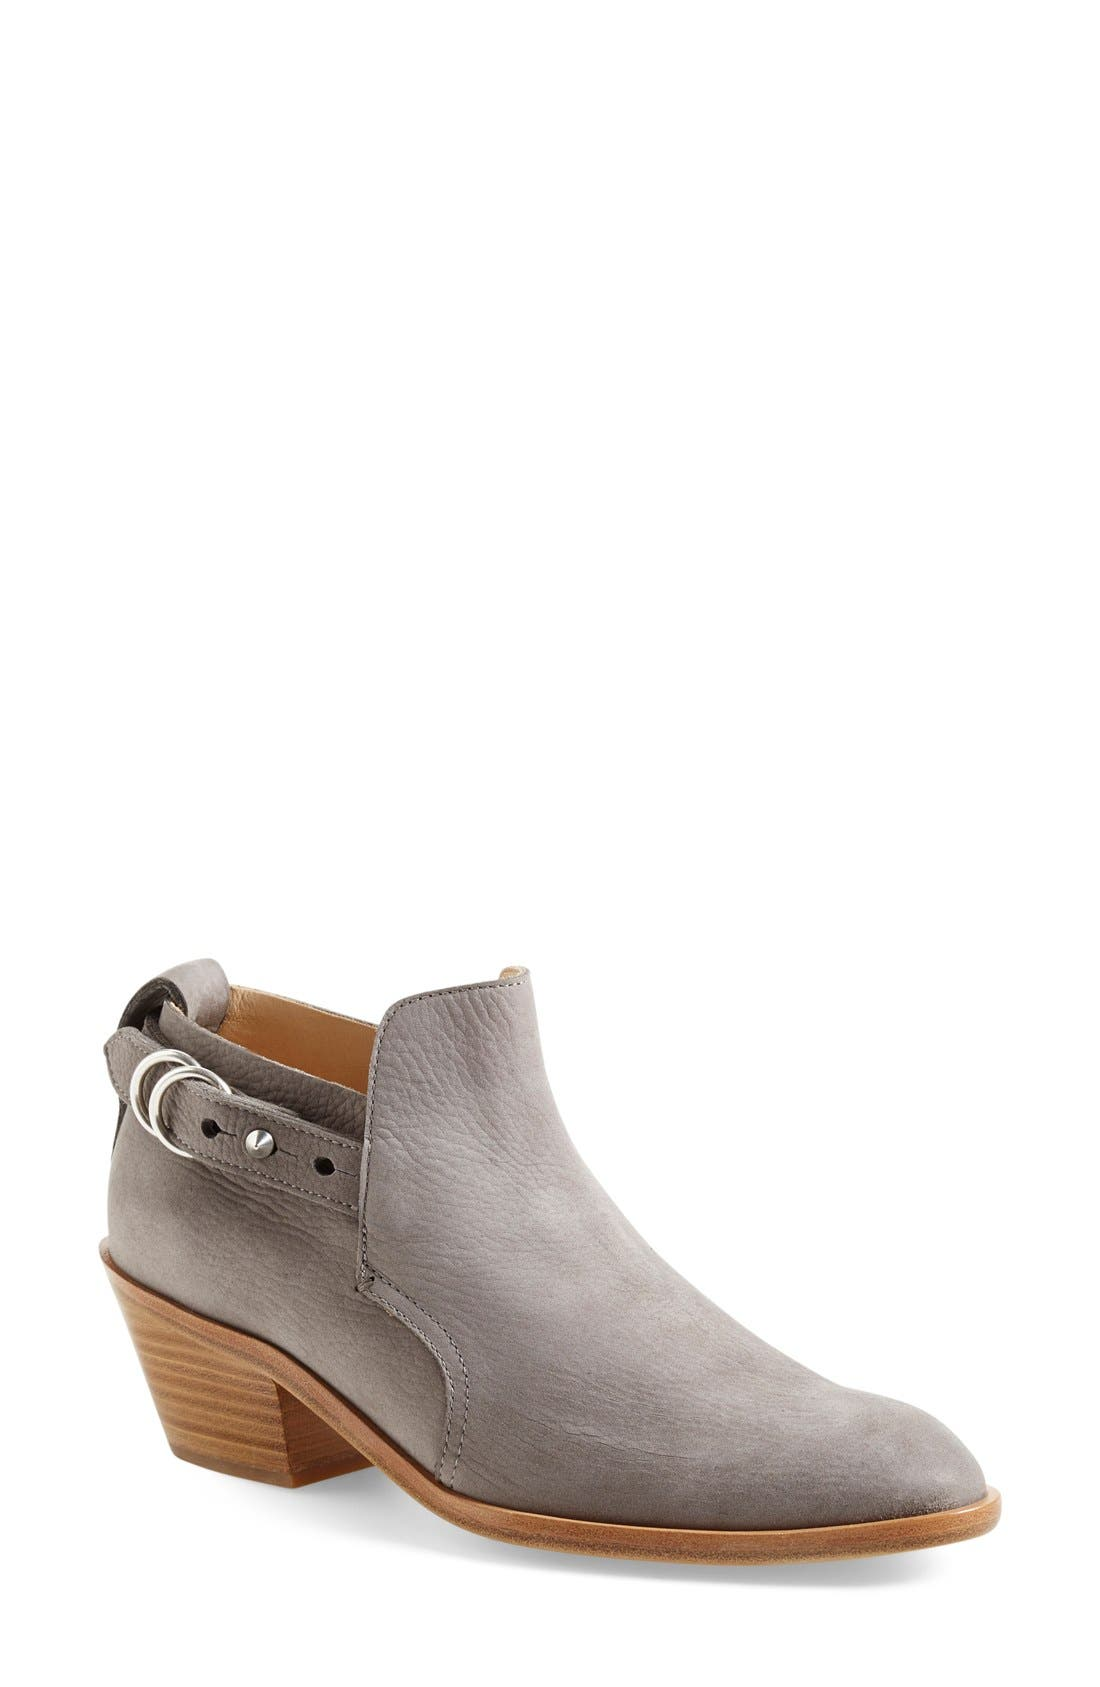 Womens Boots First Rate 95878019 Rag Bone Sullivan Ankle